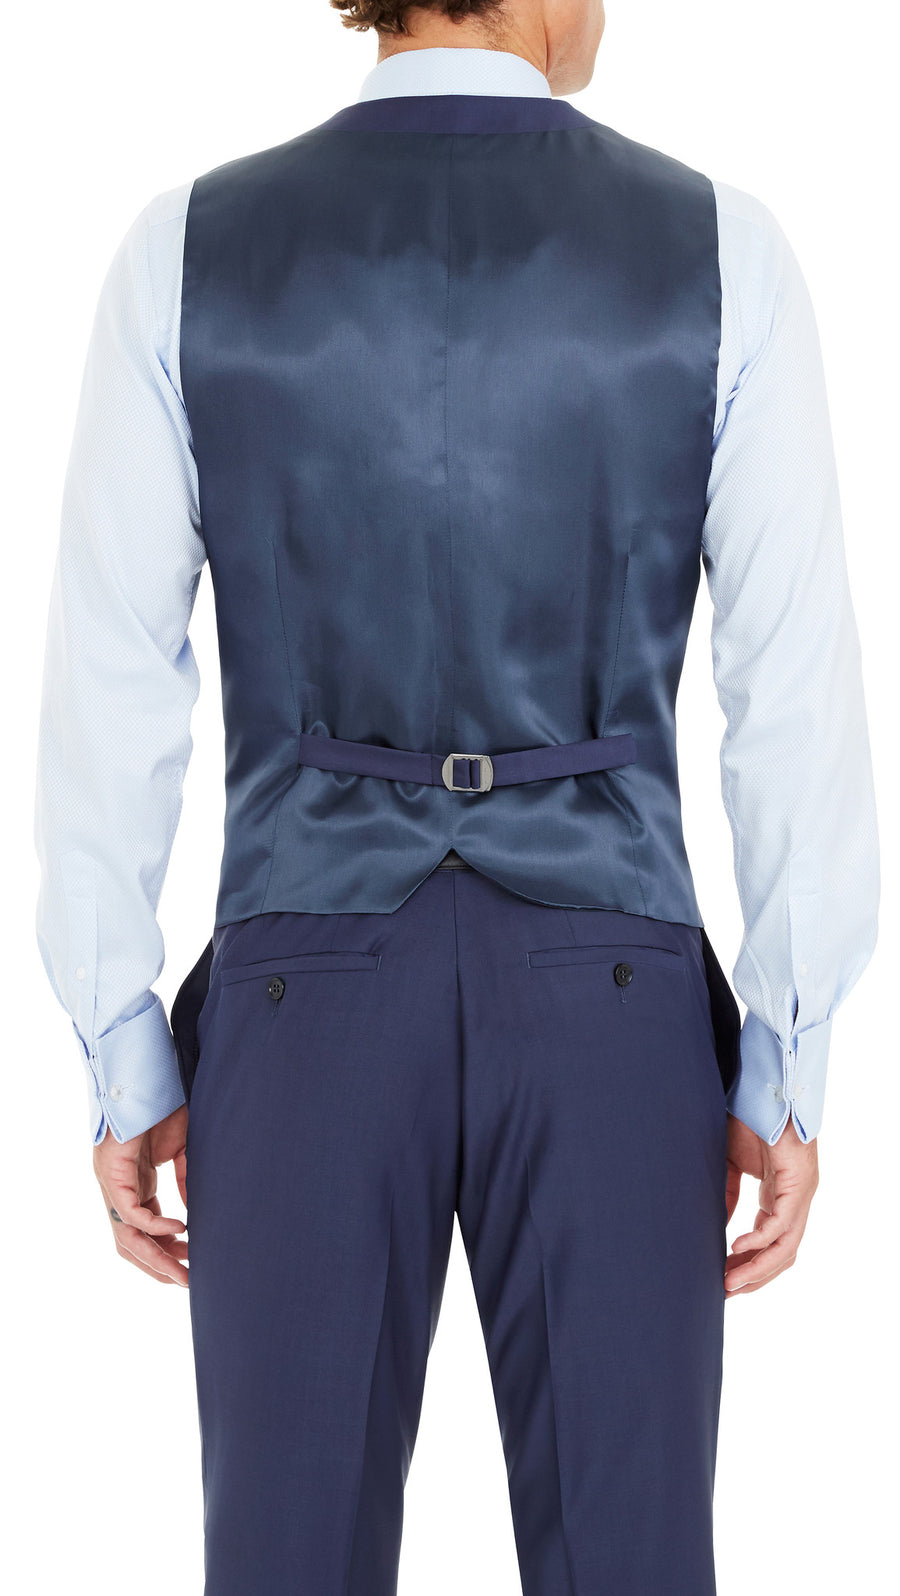 Blackjacket Skinny Fit Vest in Blue - Ron Bennett Menswear  - 1